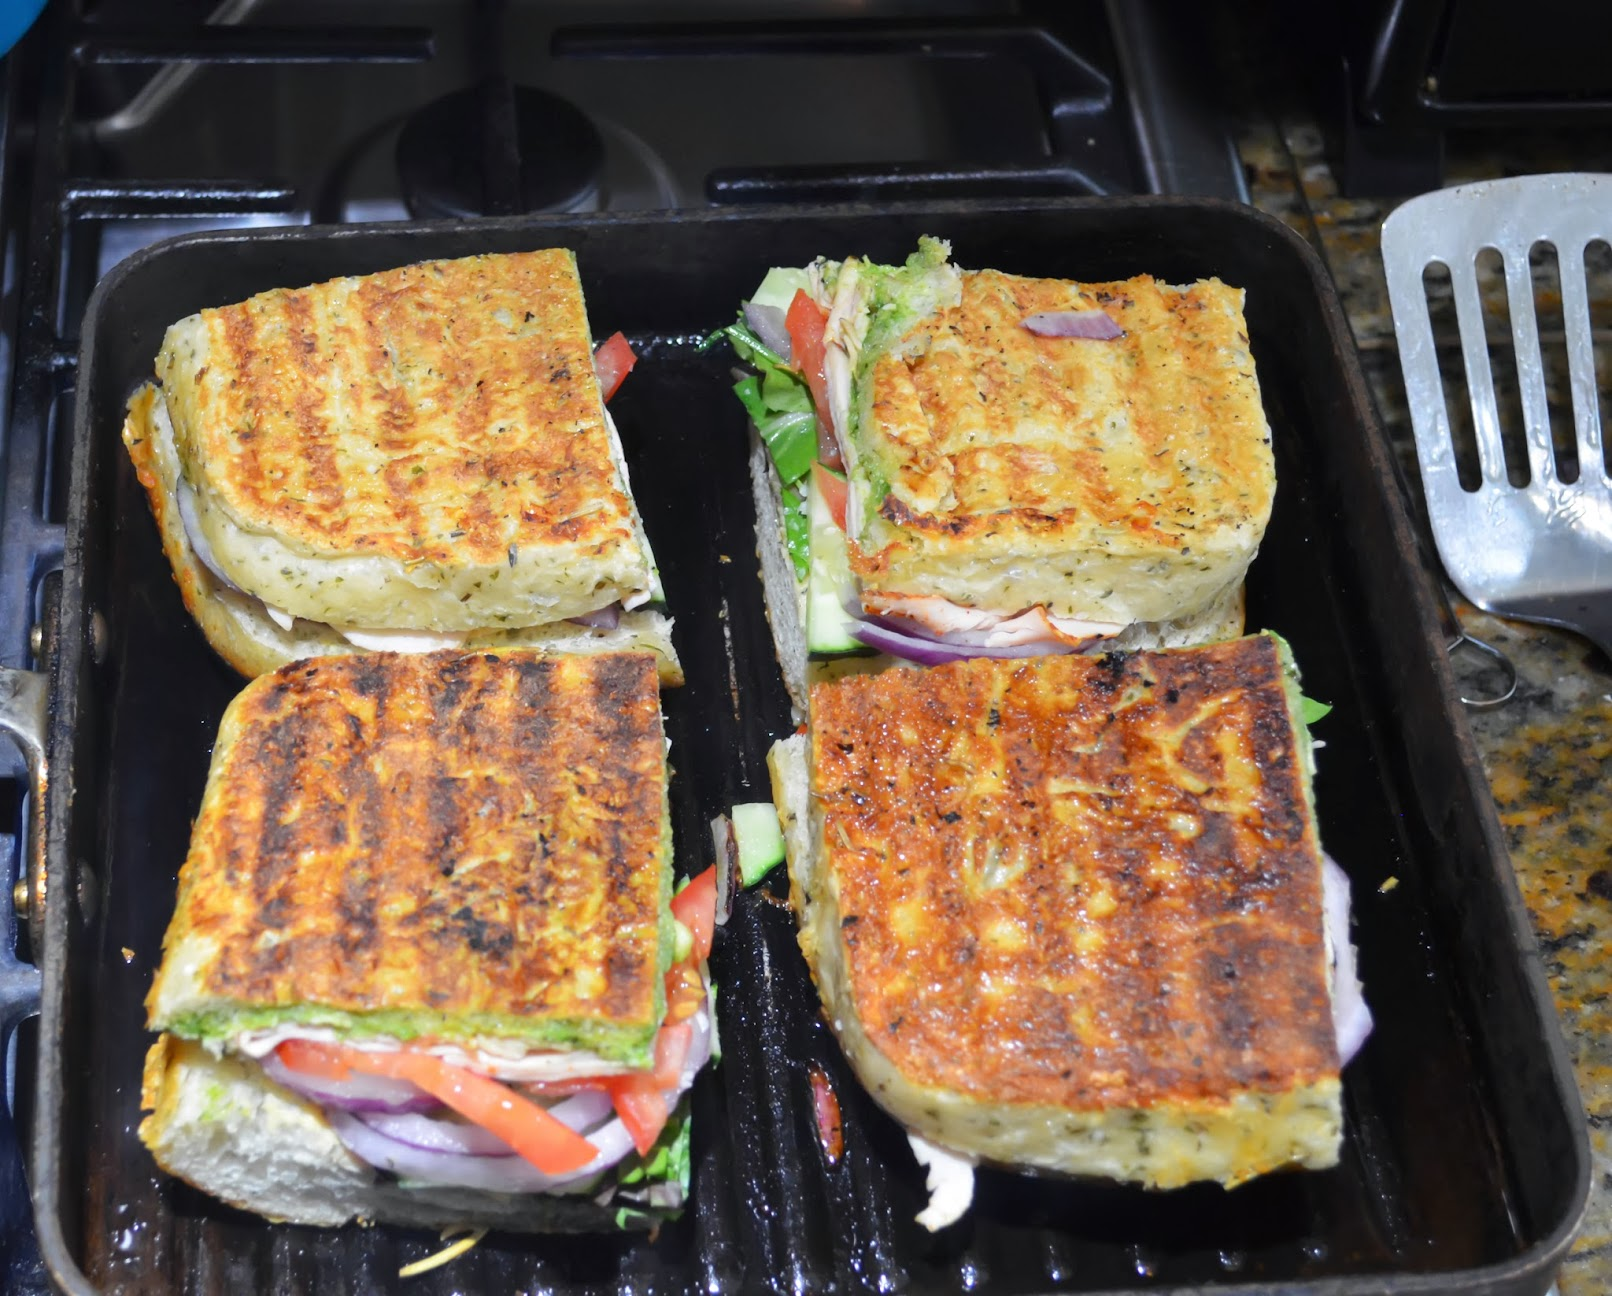 Turkey-Pesto-Paninis-Grill.jpg